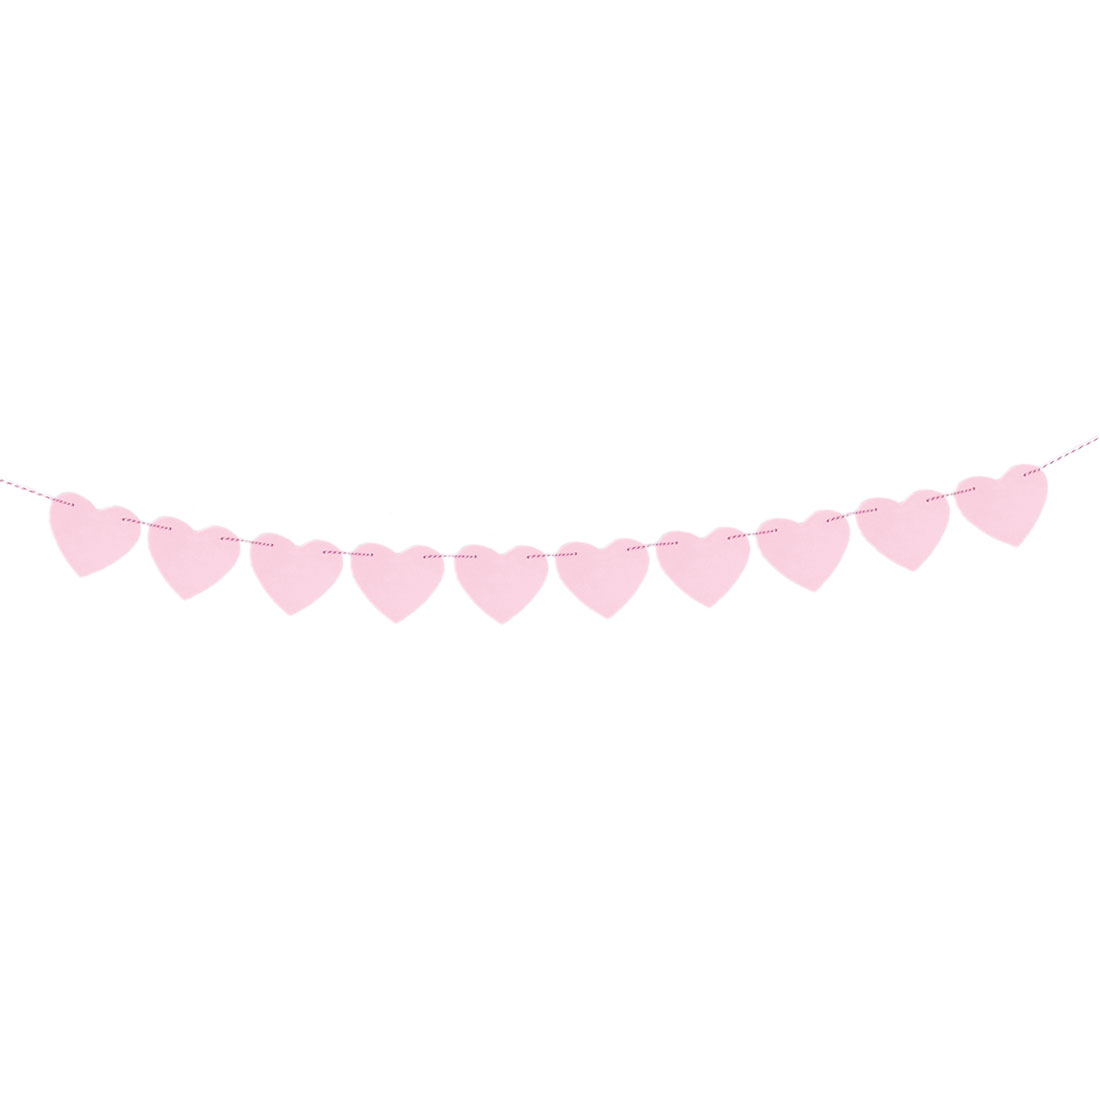 Paper Heart Shaped Party Decoration Photo Prop Bunting Banner Pink 3 Meter Length